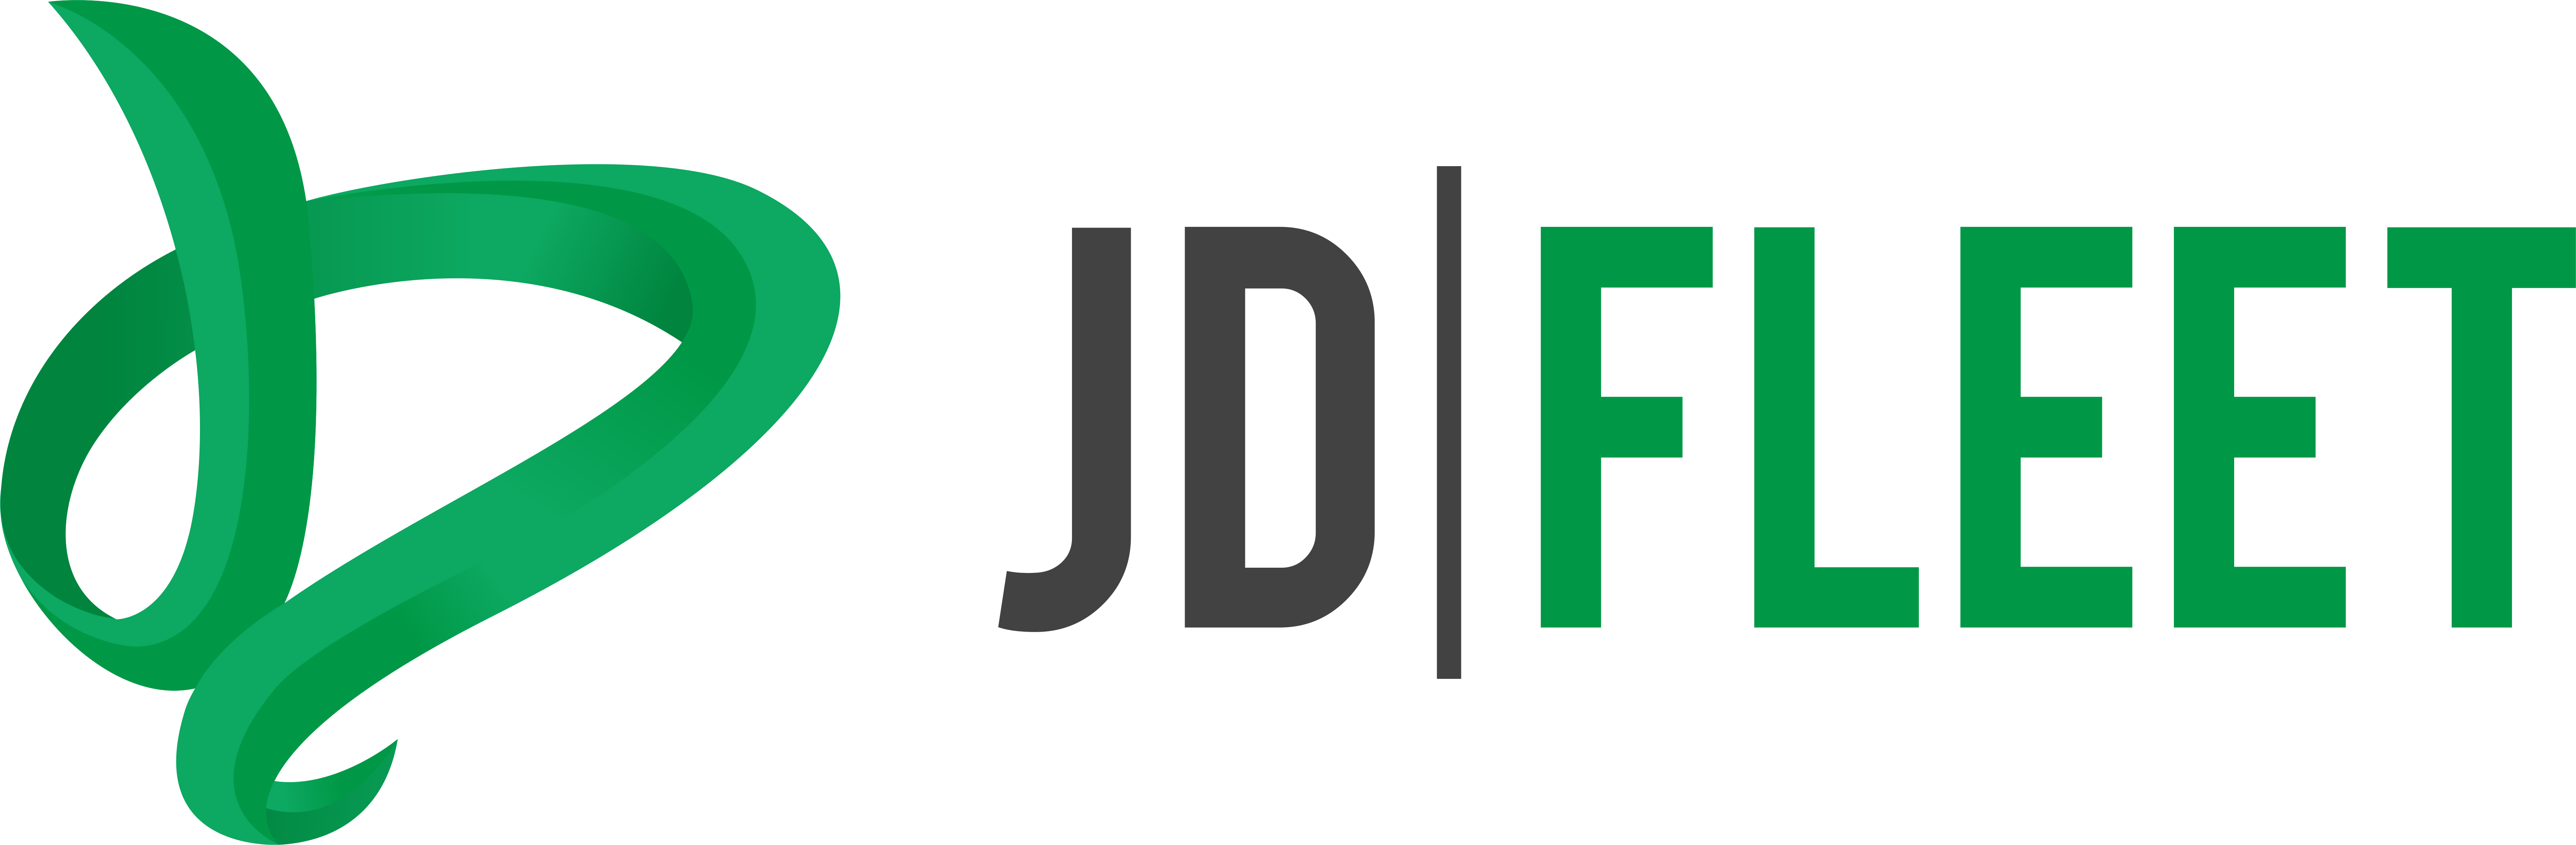 JD Fleet Logo